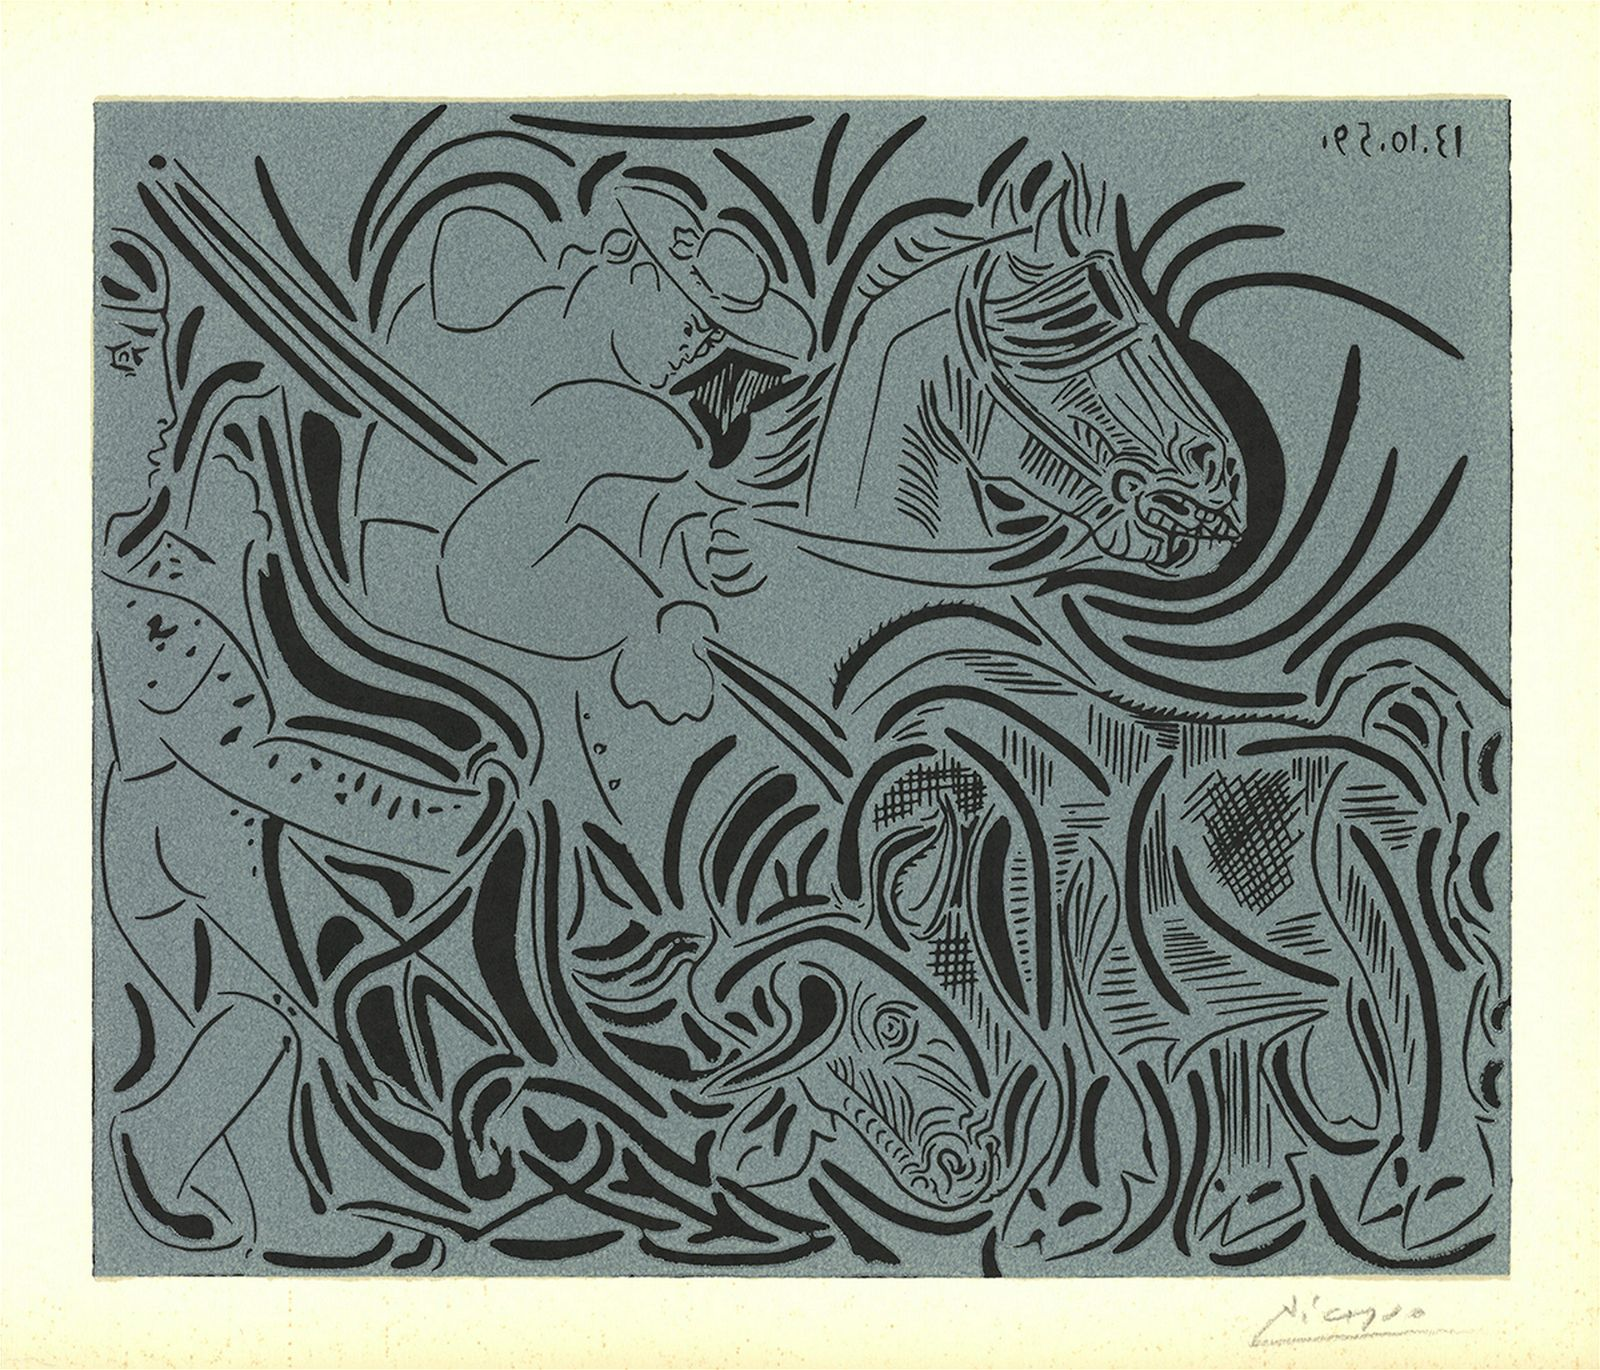 Pablo Picasso: Man on a Horse